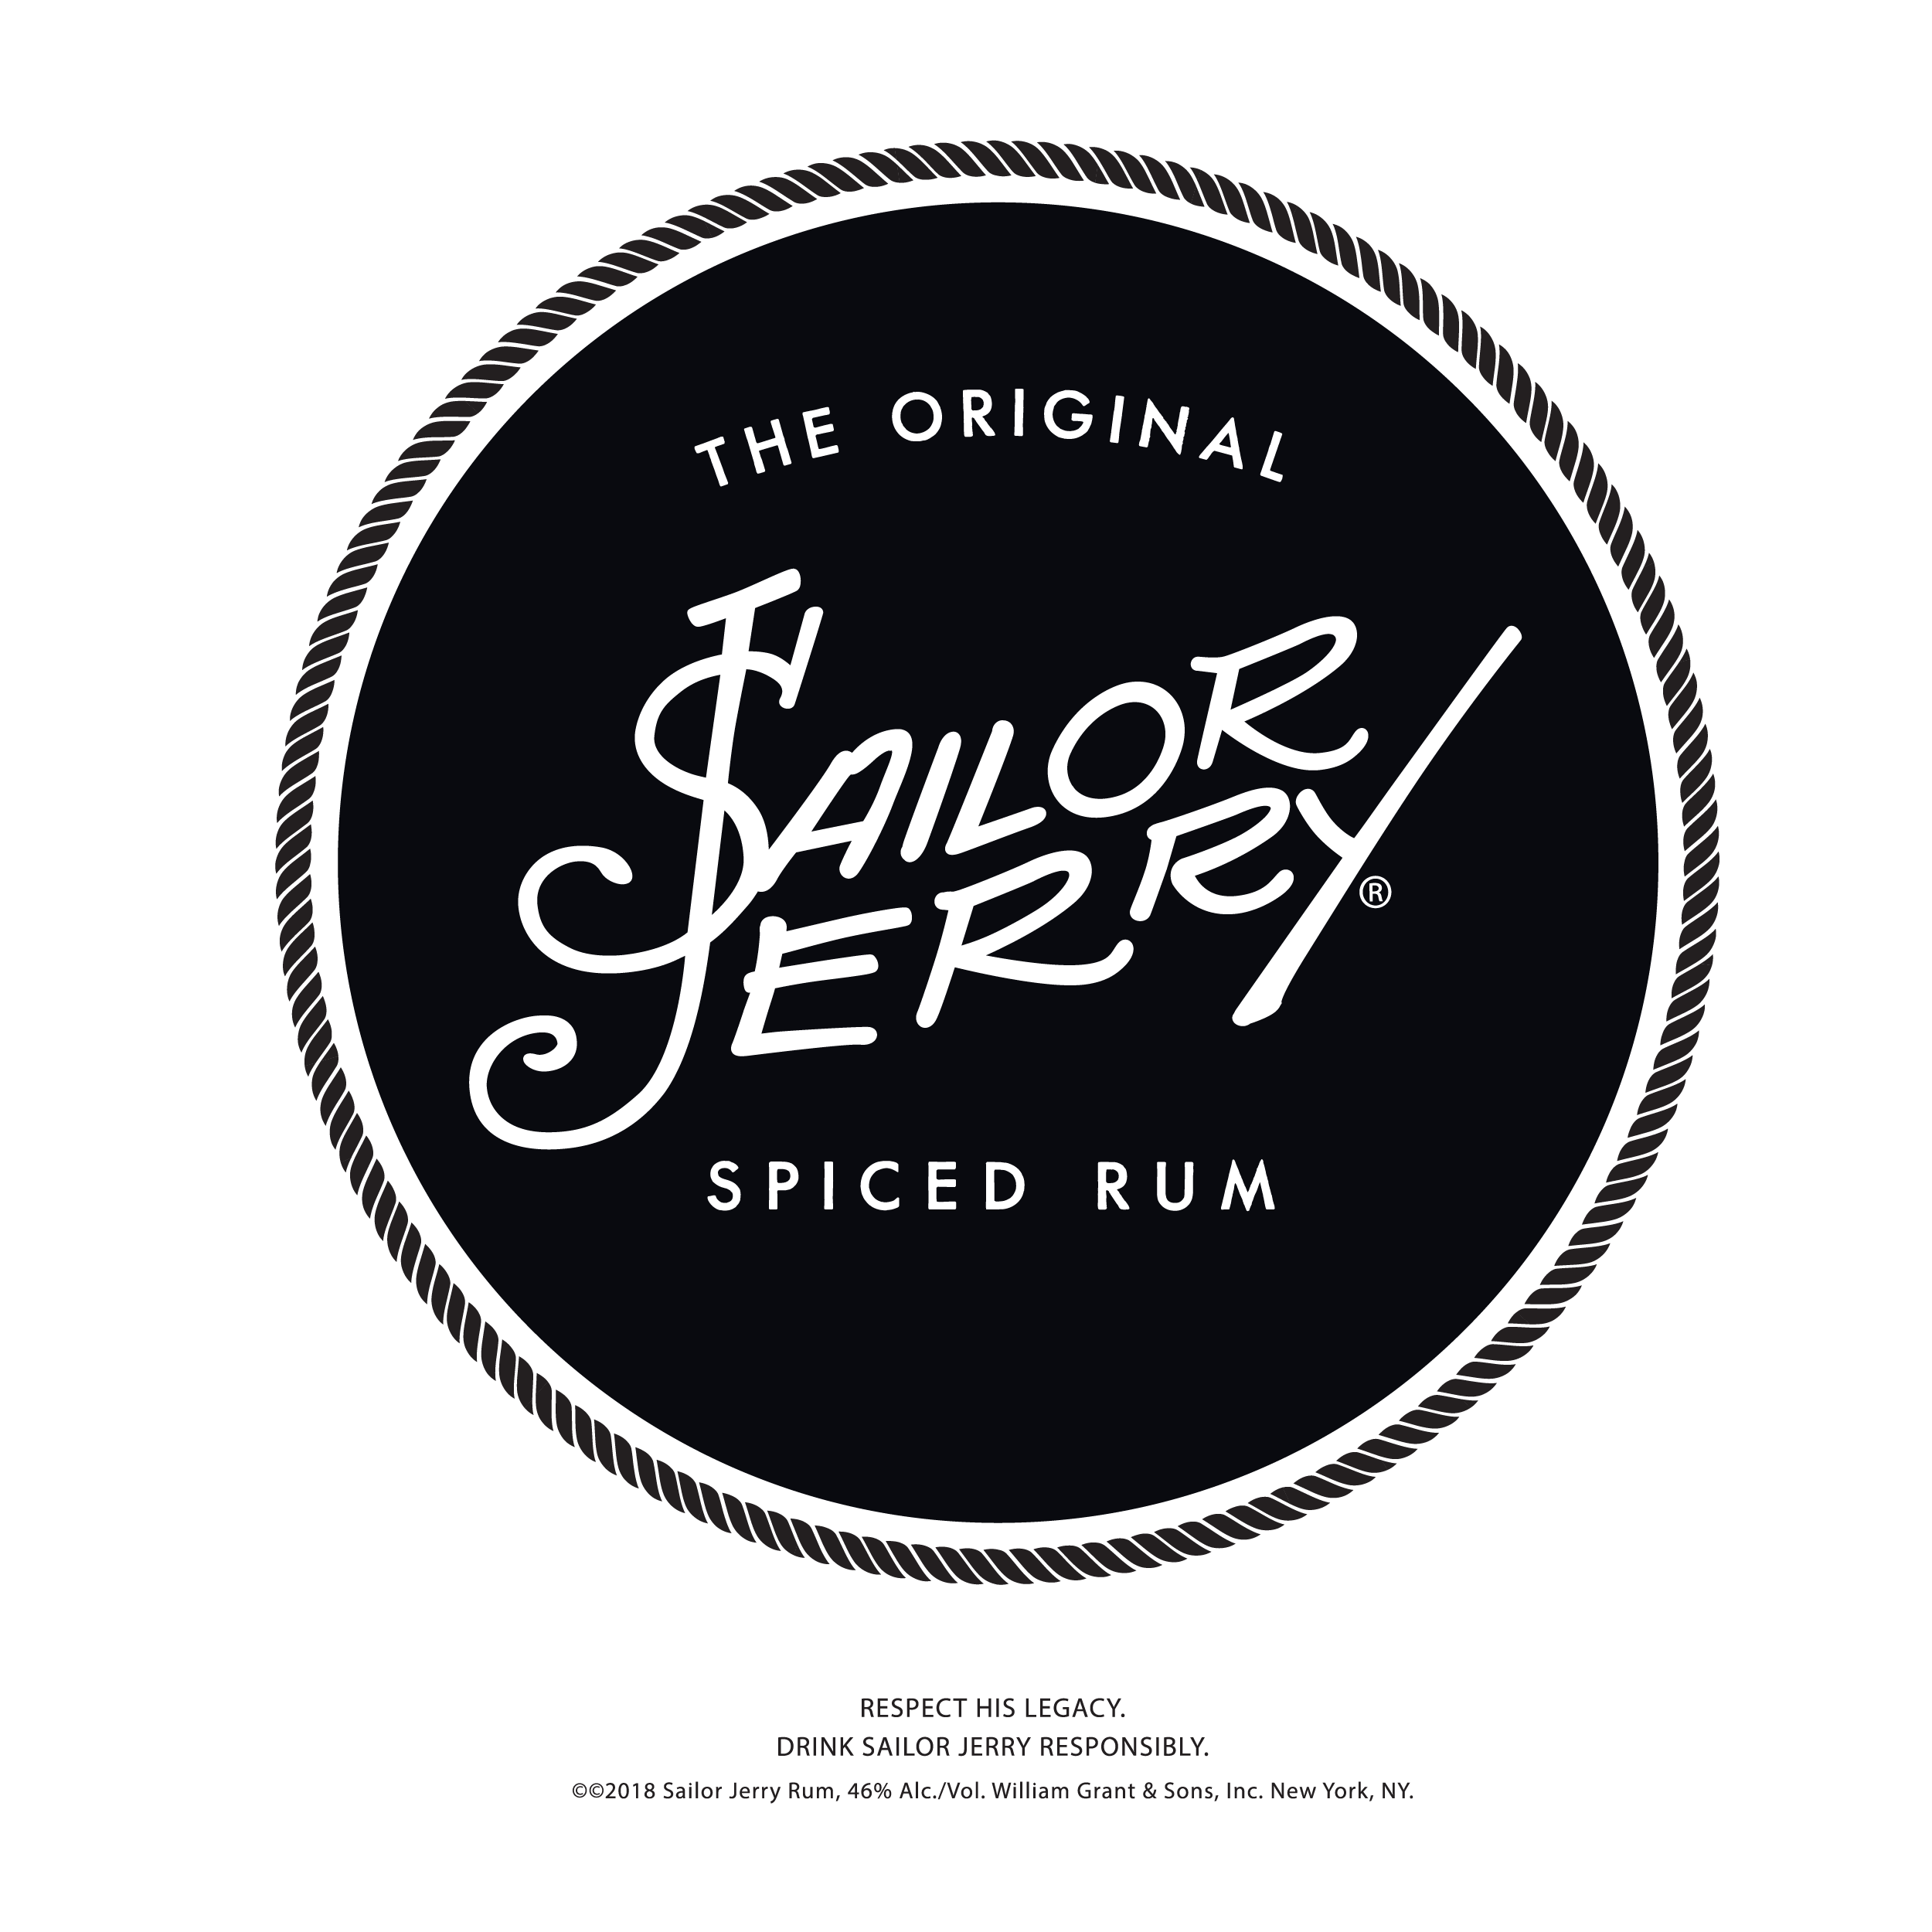 SailorJerry-01.png